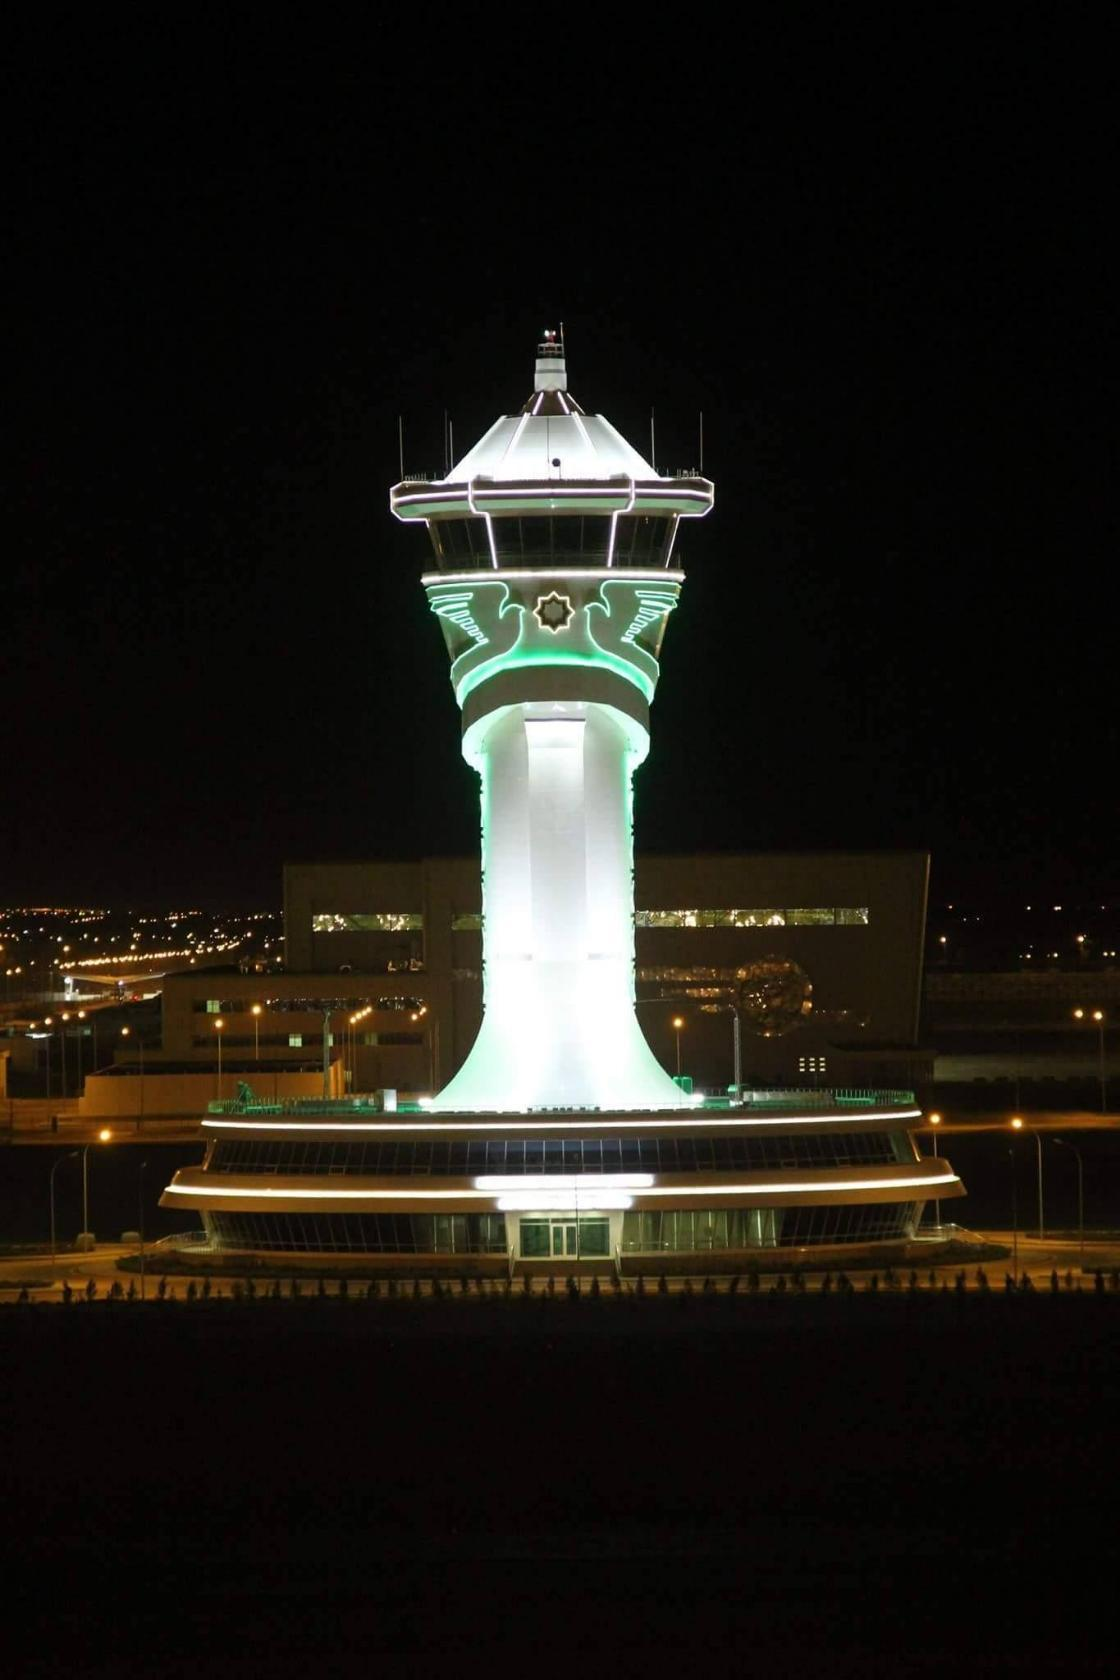 The control tower at the airport of Ashgabat